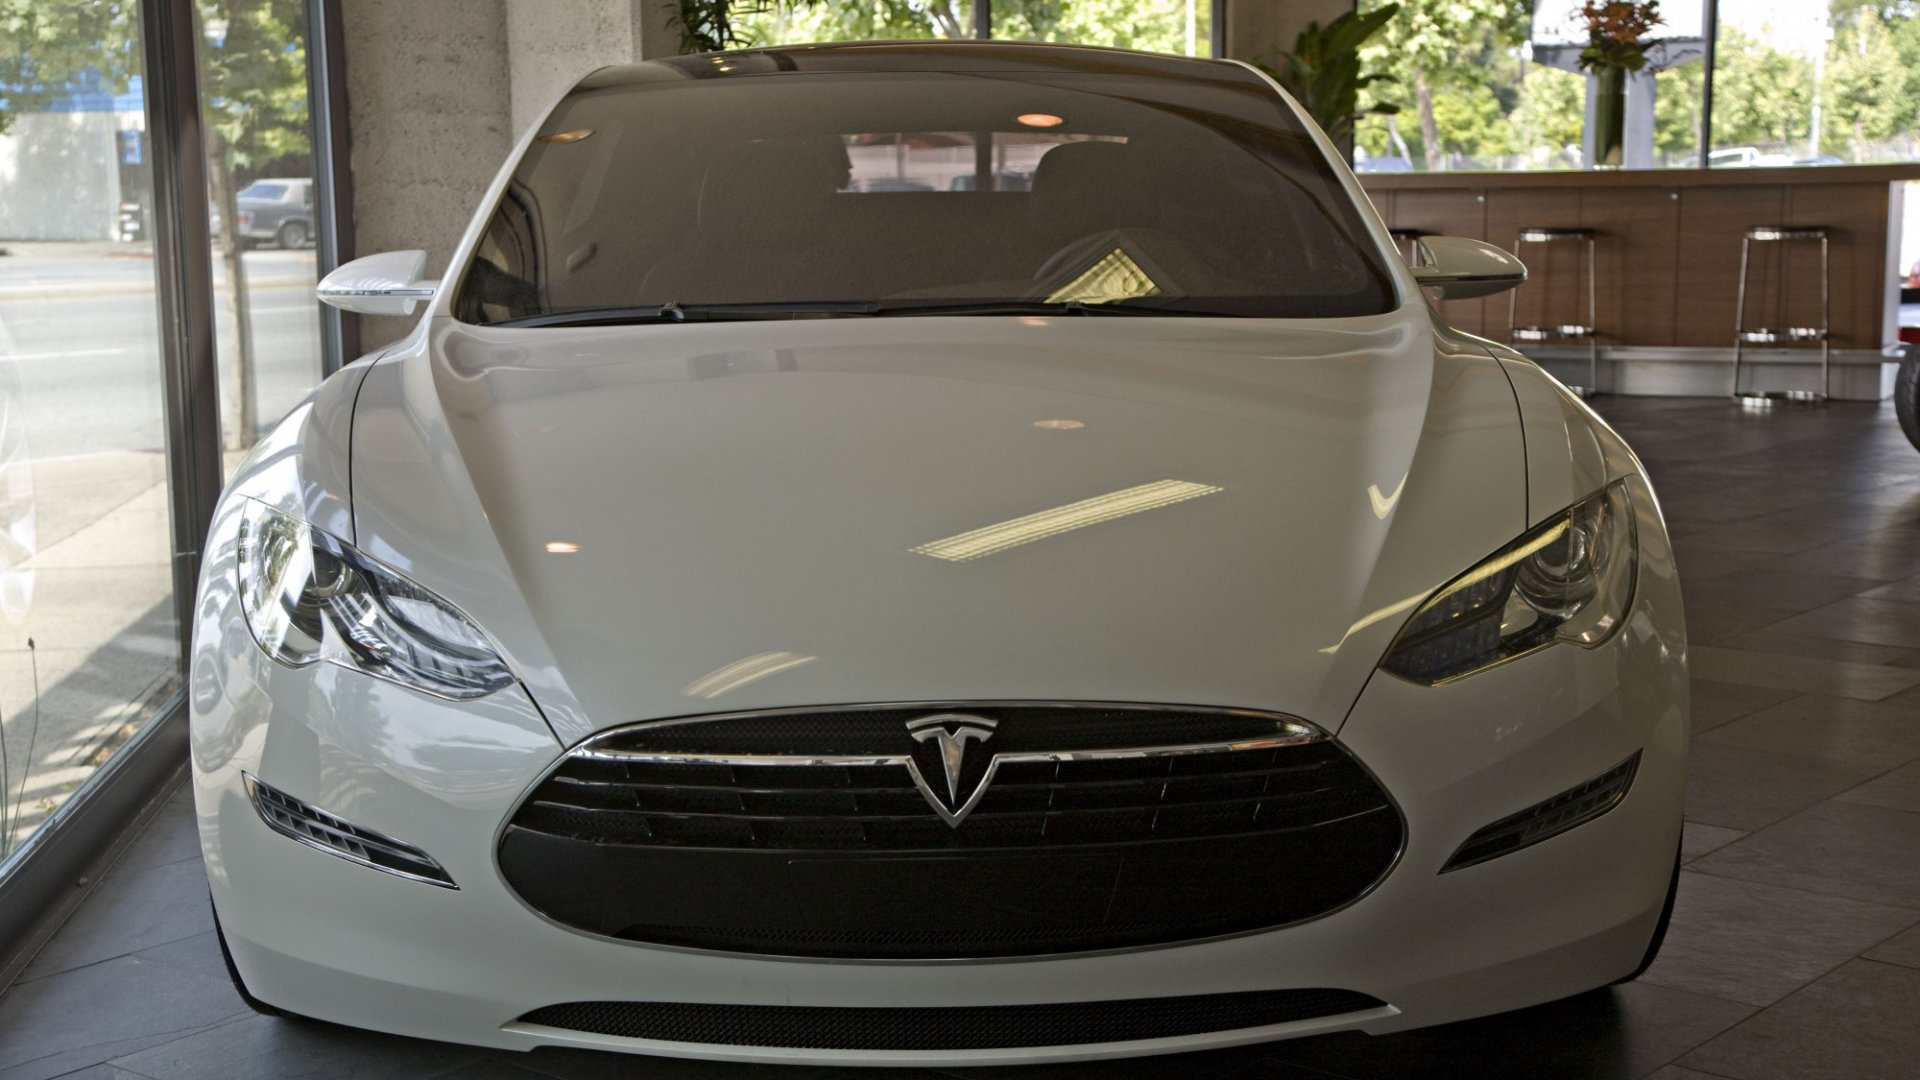 6 Things I've Learned Driving a Tesla for Work